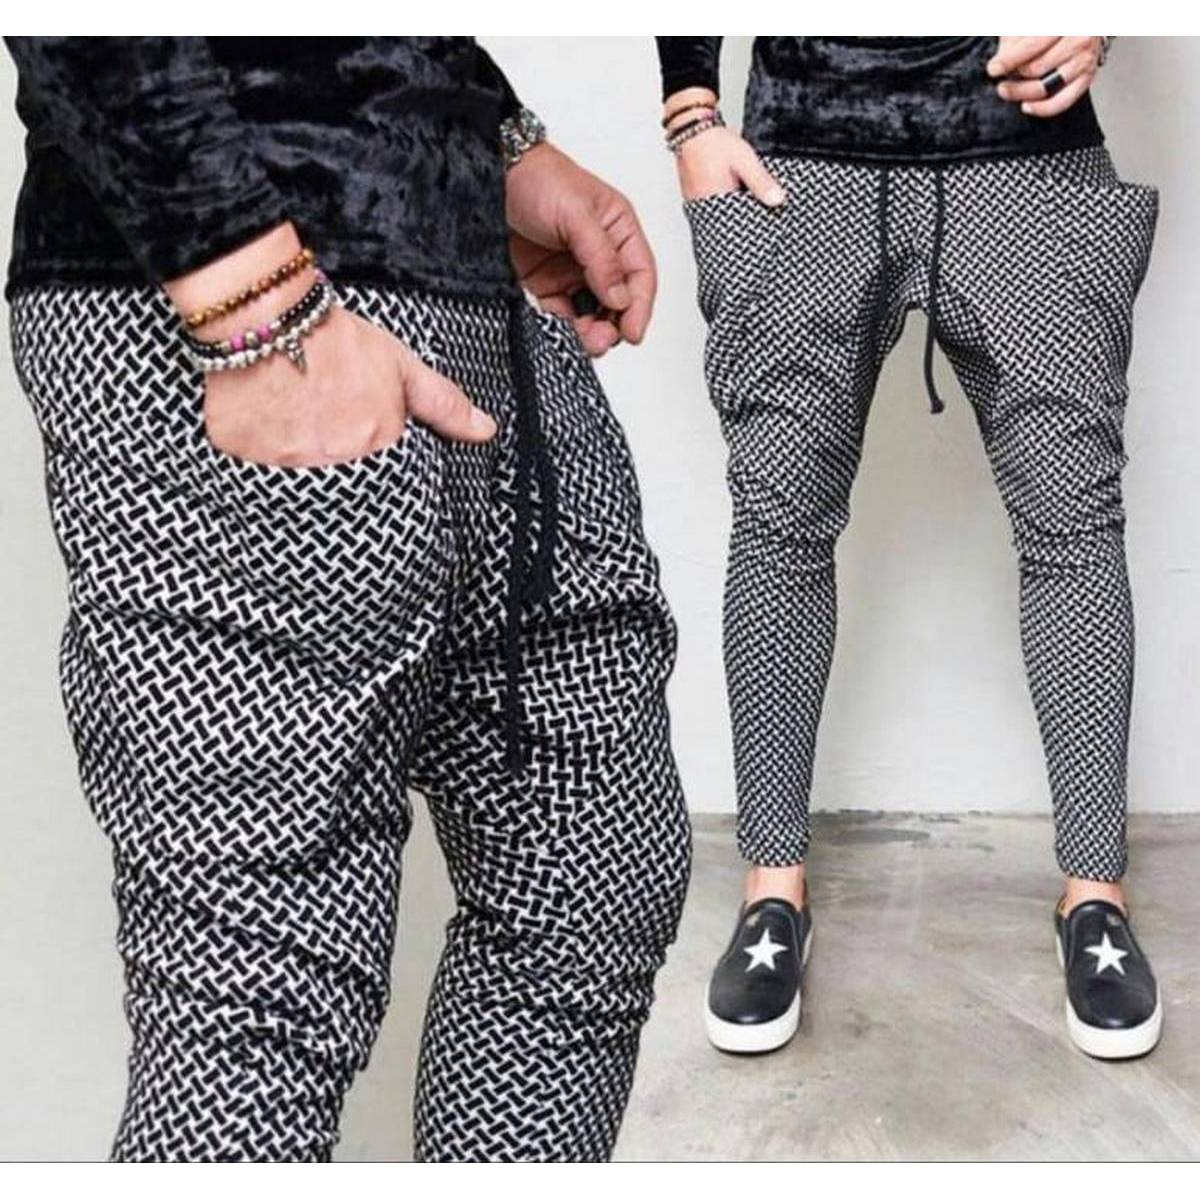 Trouser Pant Imported Men's Lounge Pants Pajamas For Playing And Night Wear.